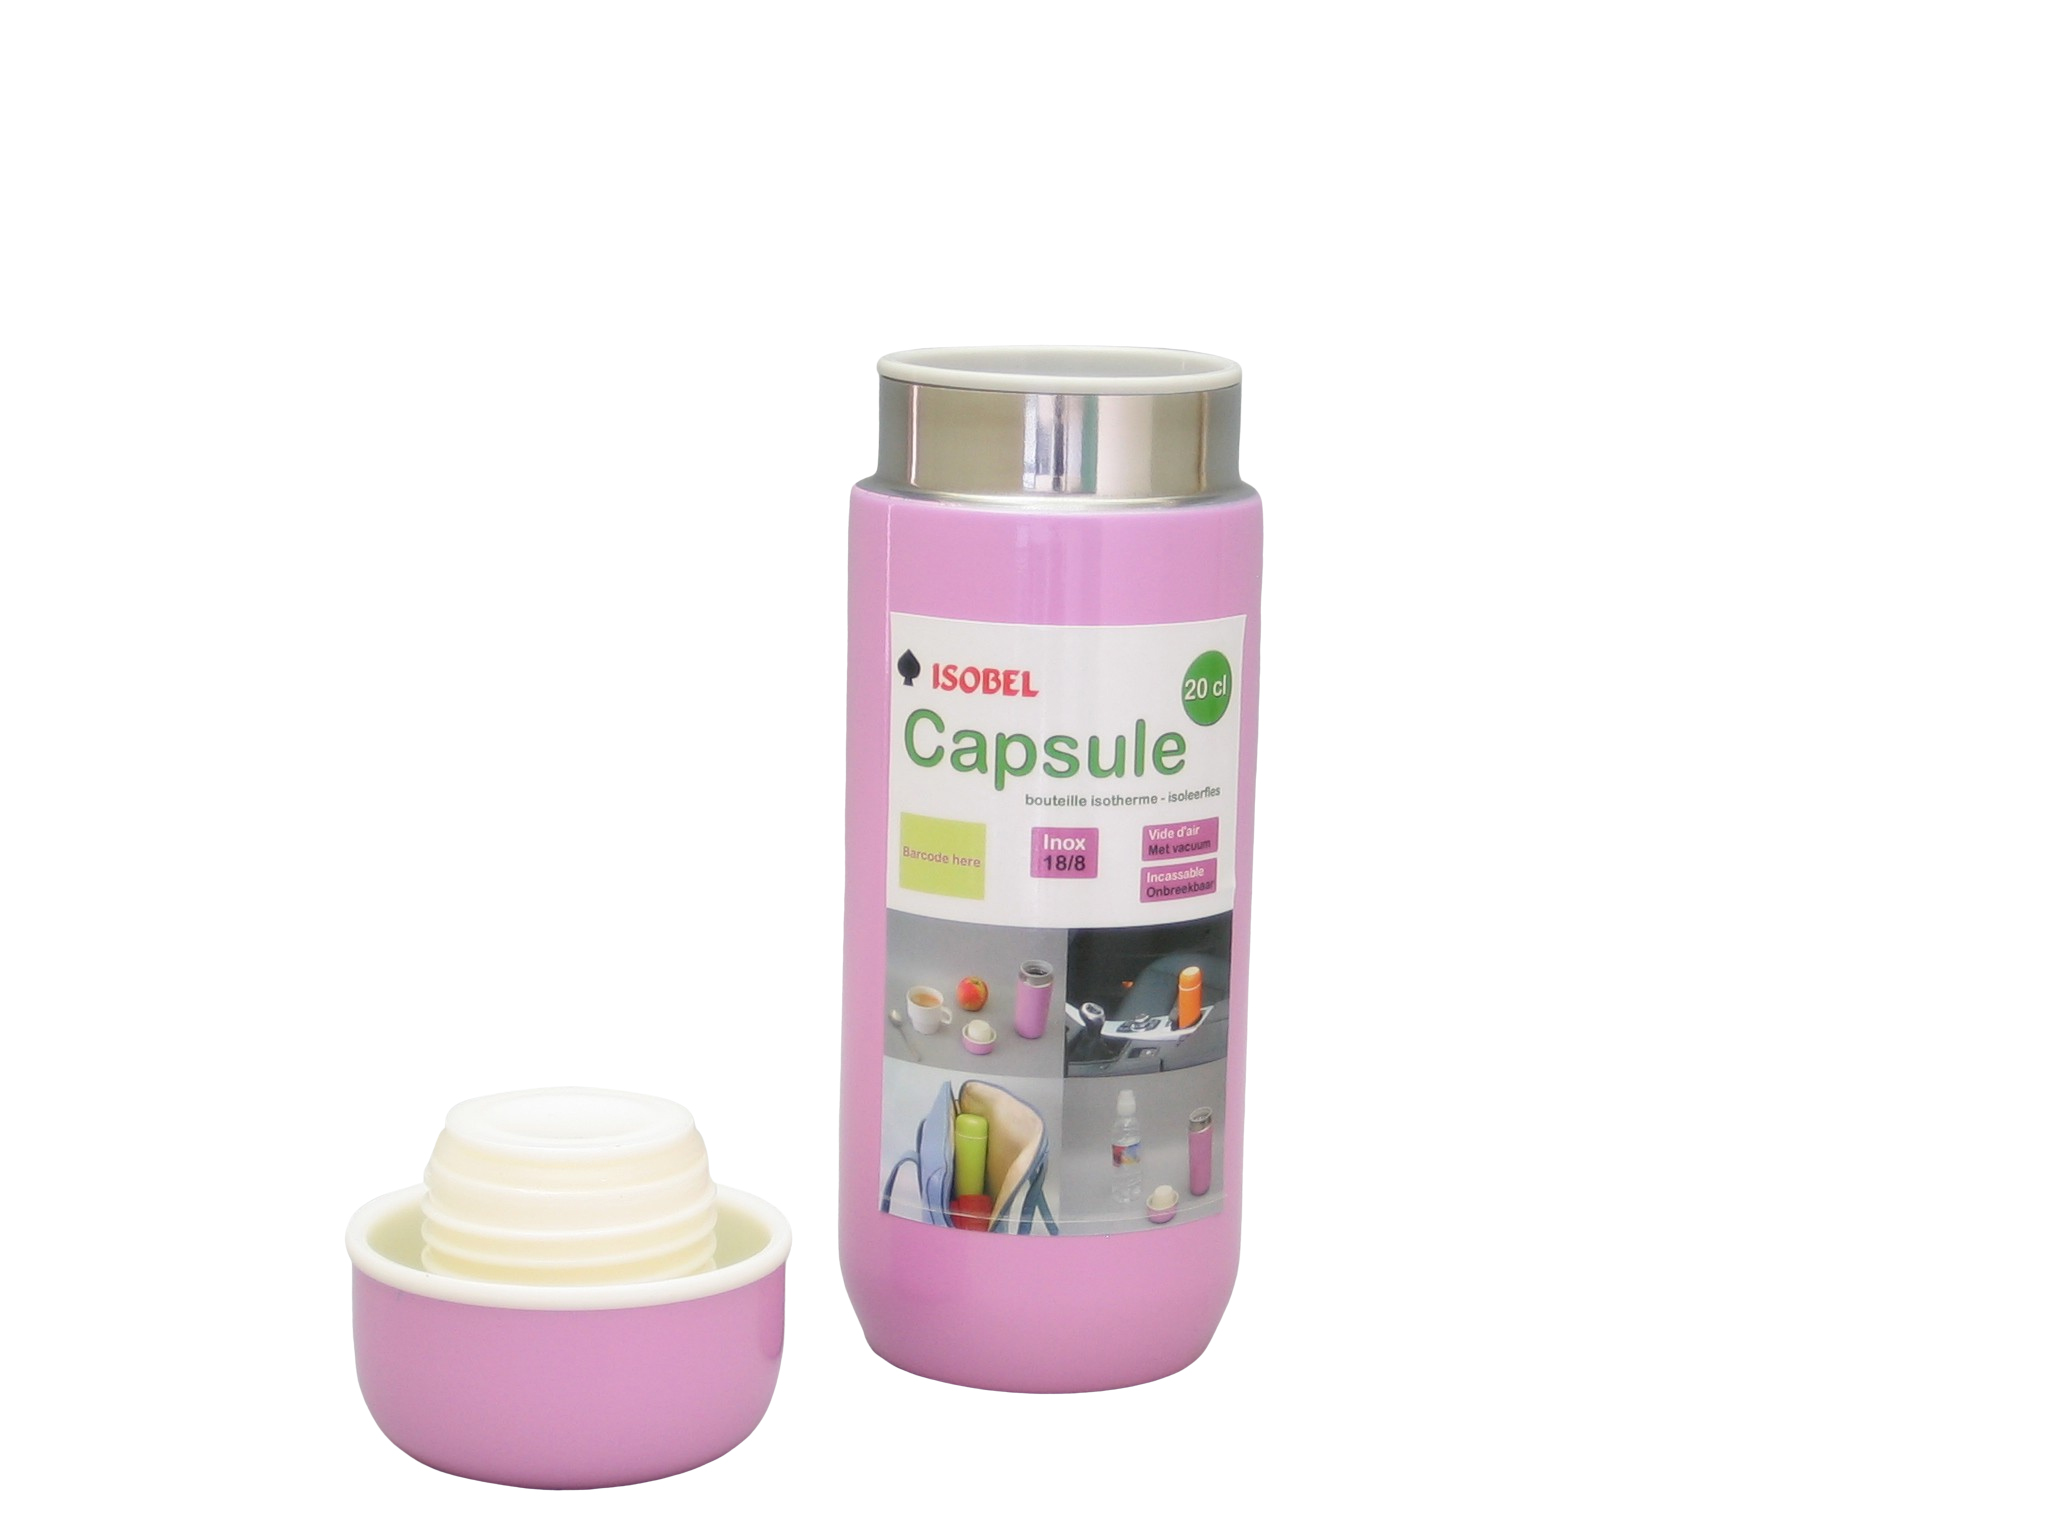 CAPSULE-132 - Bouteille isotherme inox incassable fuchsia 0.20 L - Isobel